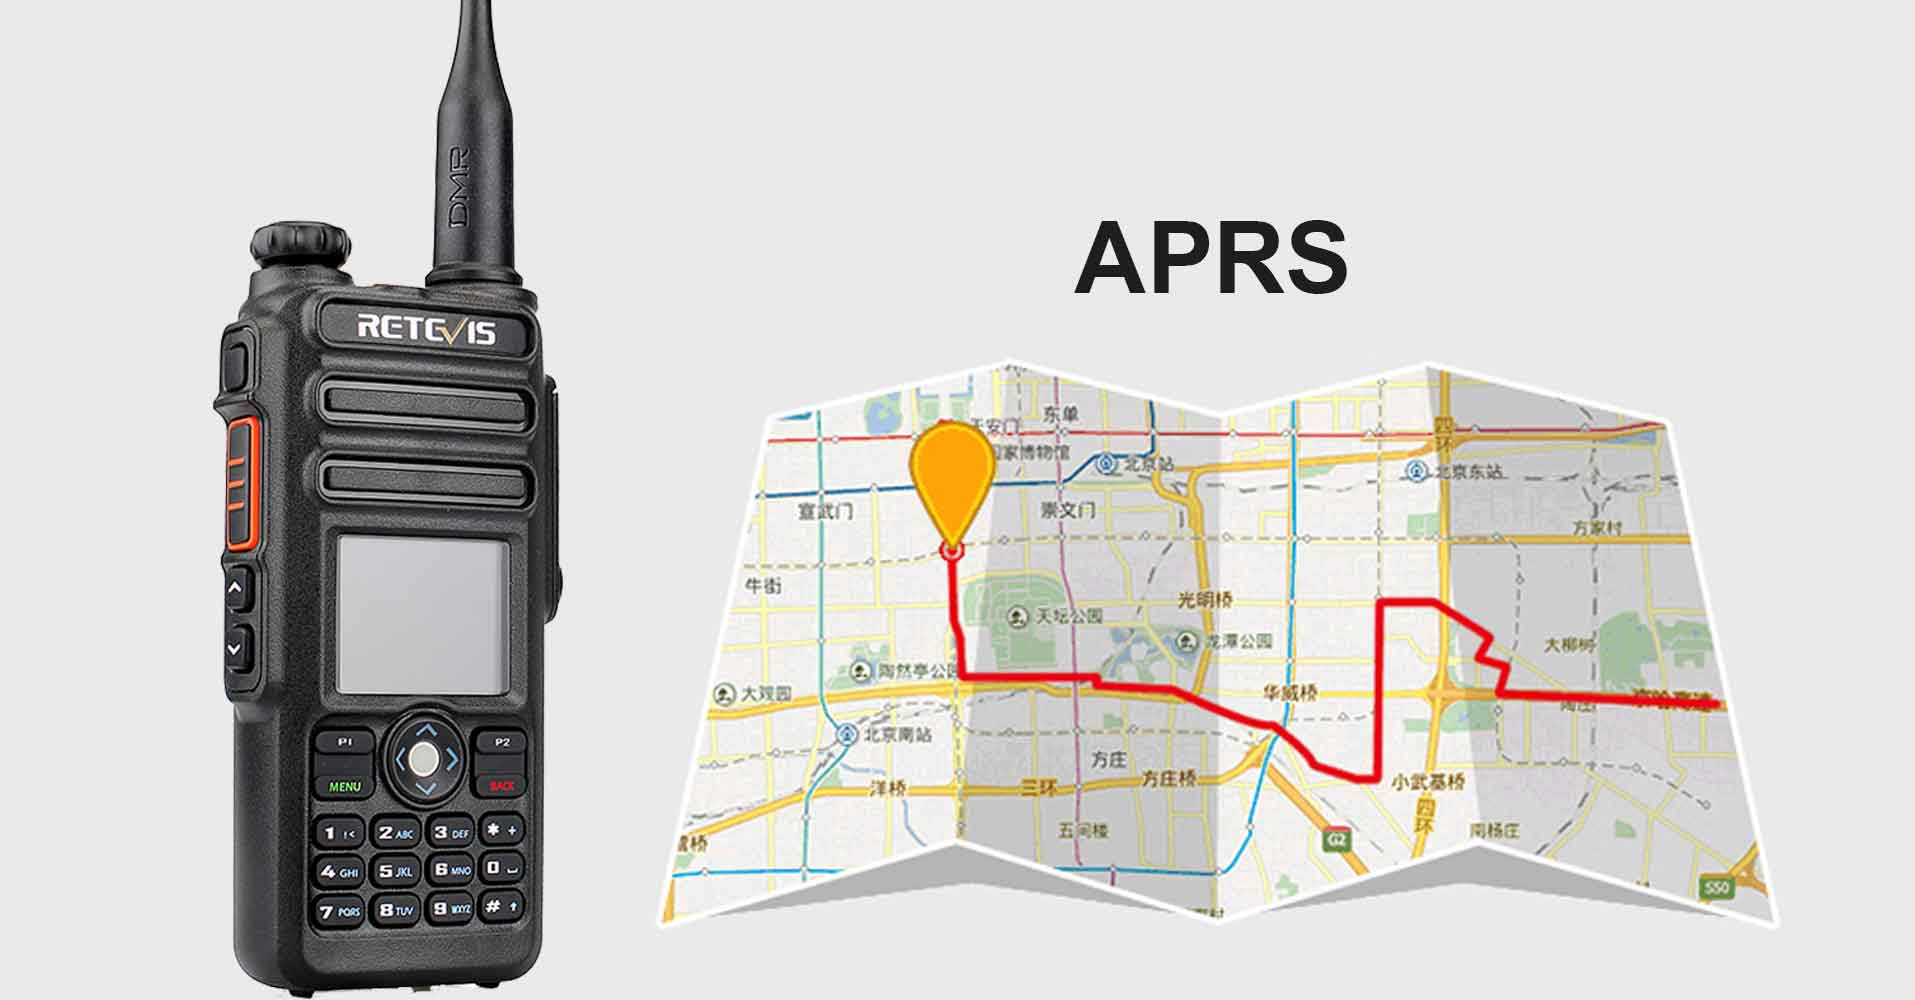 How to use the RT82 built in GPS to report APRS location